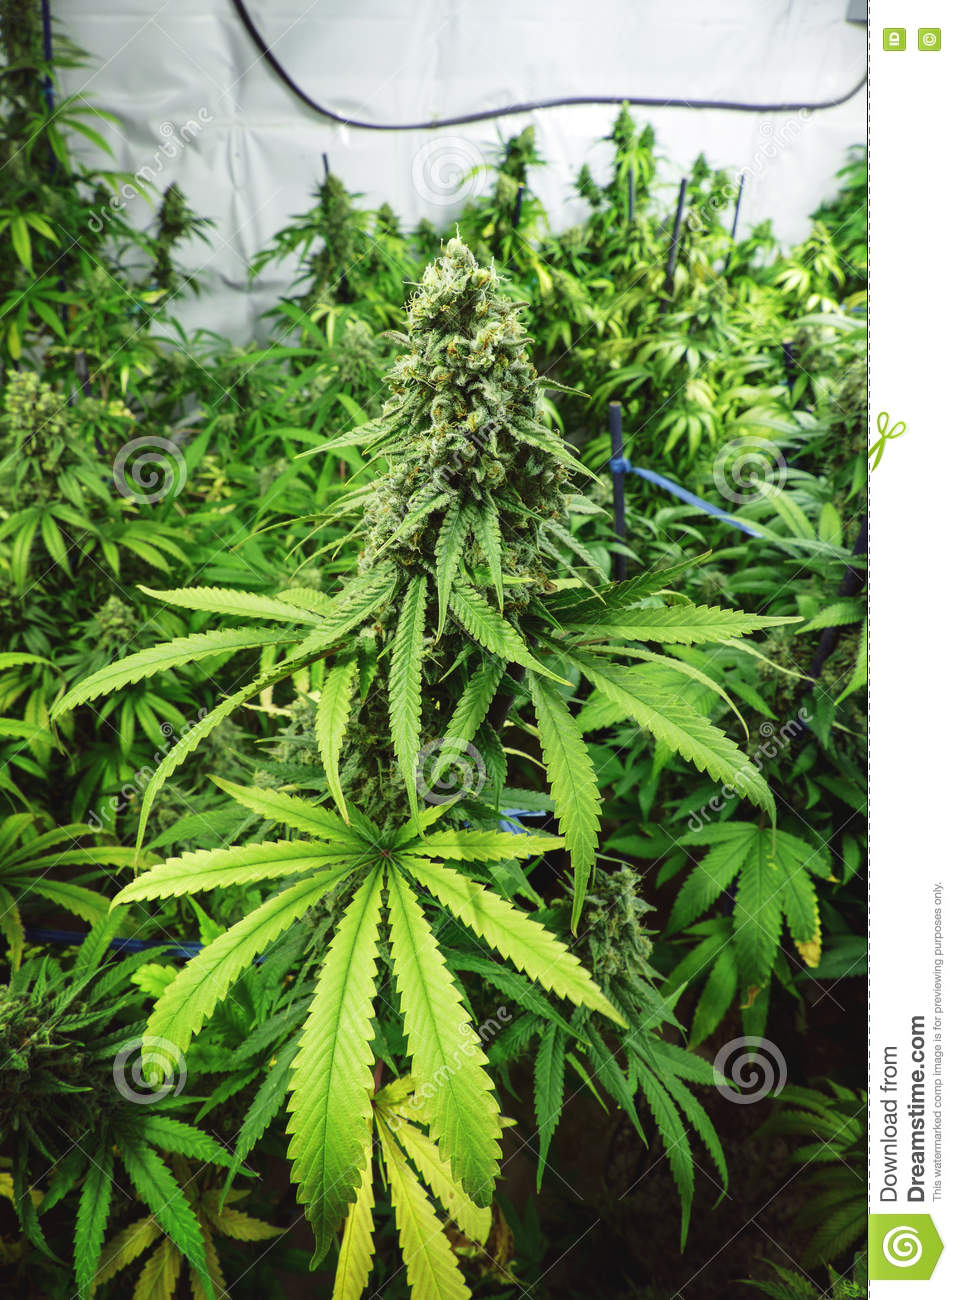 Large Budding Plant At Indoor Cannabis Farm Stock ... on outdoor cannabis, home grow weed easy, organic grown cannabis, agent orange cannabis, growing cannabis, mutant cannabis, dried cannabis, led cannabis, say no to cannabis, drying cannabis, cheese cannabis, blue mystic cannabis, lsd cannabis, funny cannabis, indoor plants cannabis,